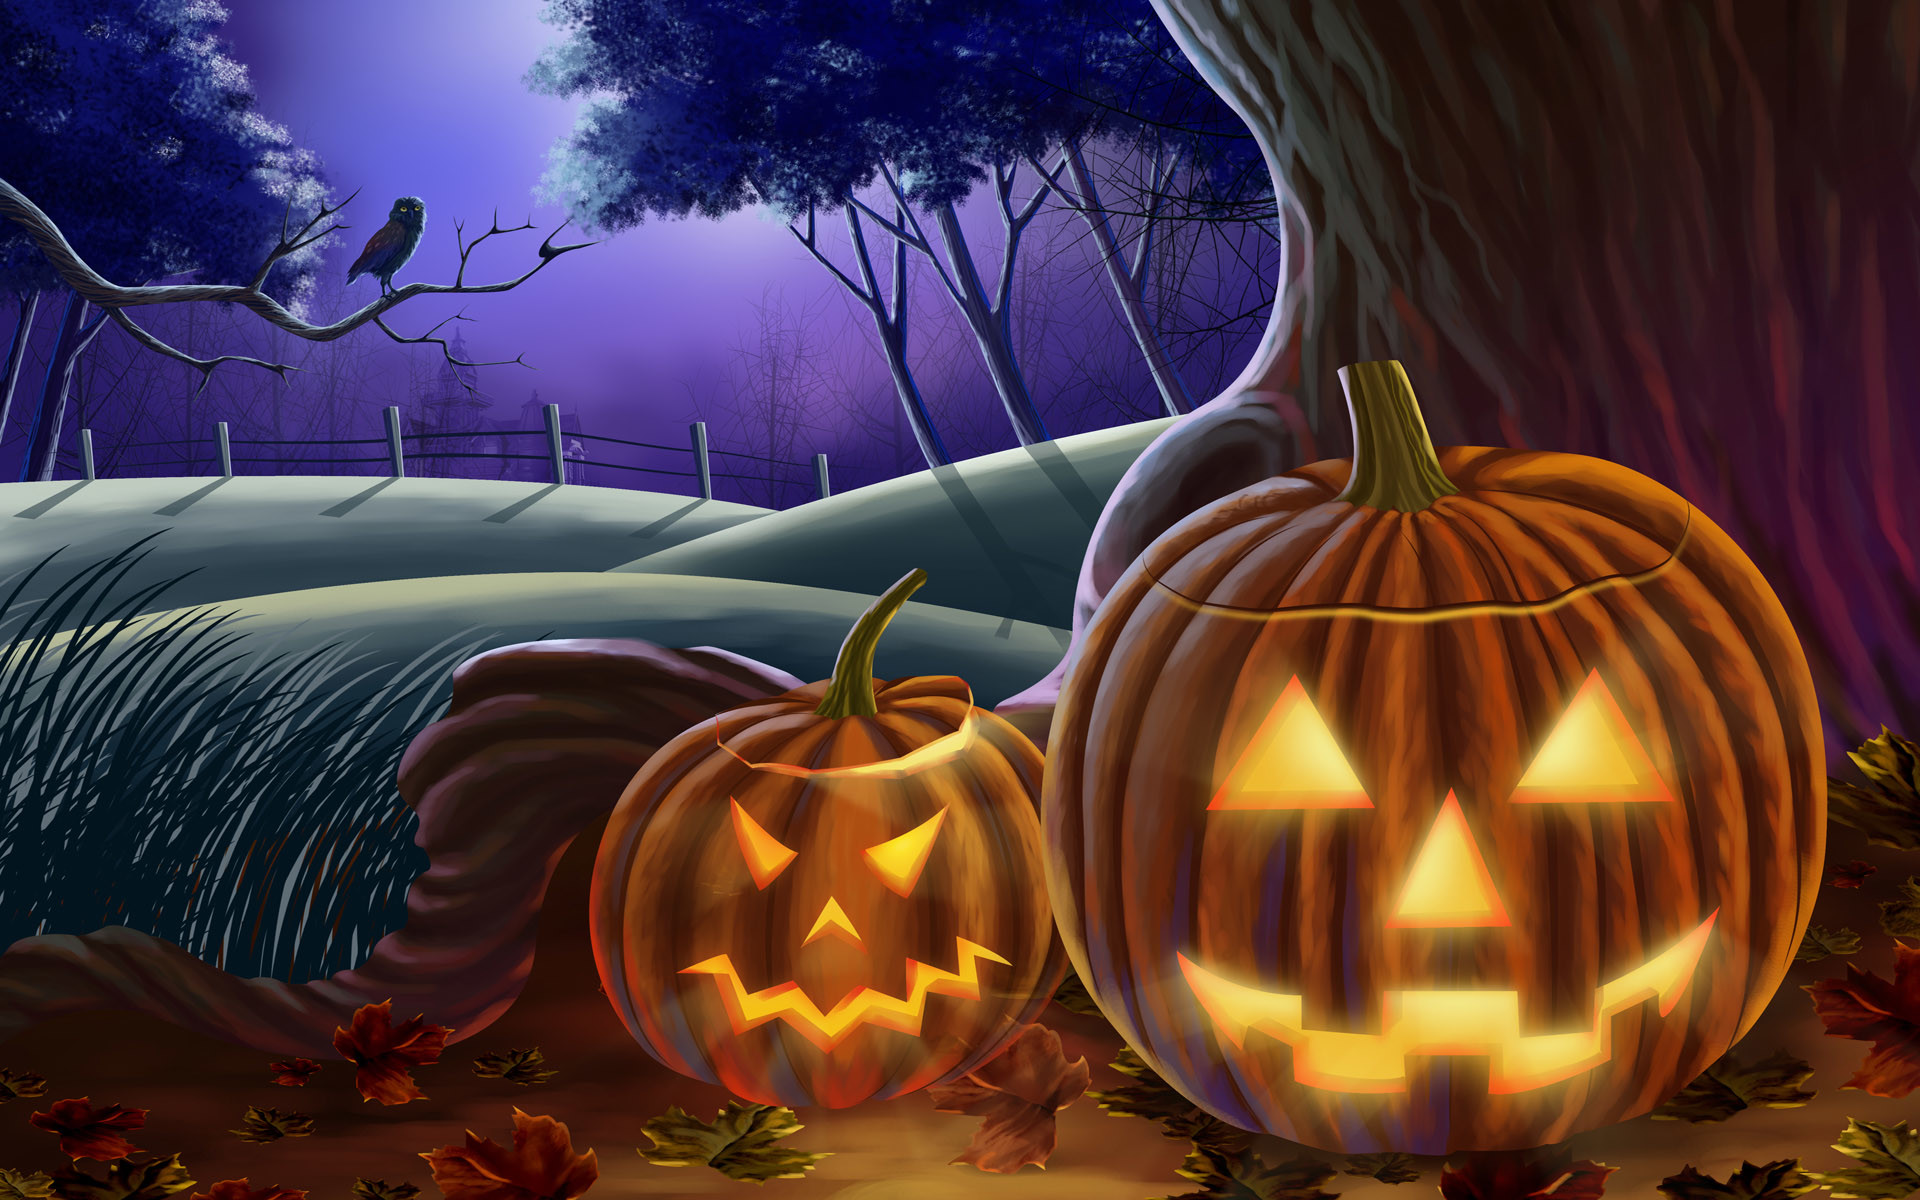 Halloween Animated Desktop Wallpaper 60 images 1920x1200